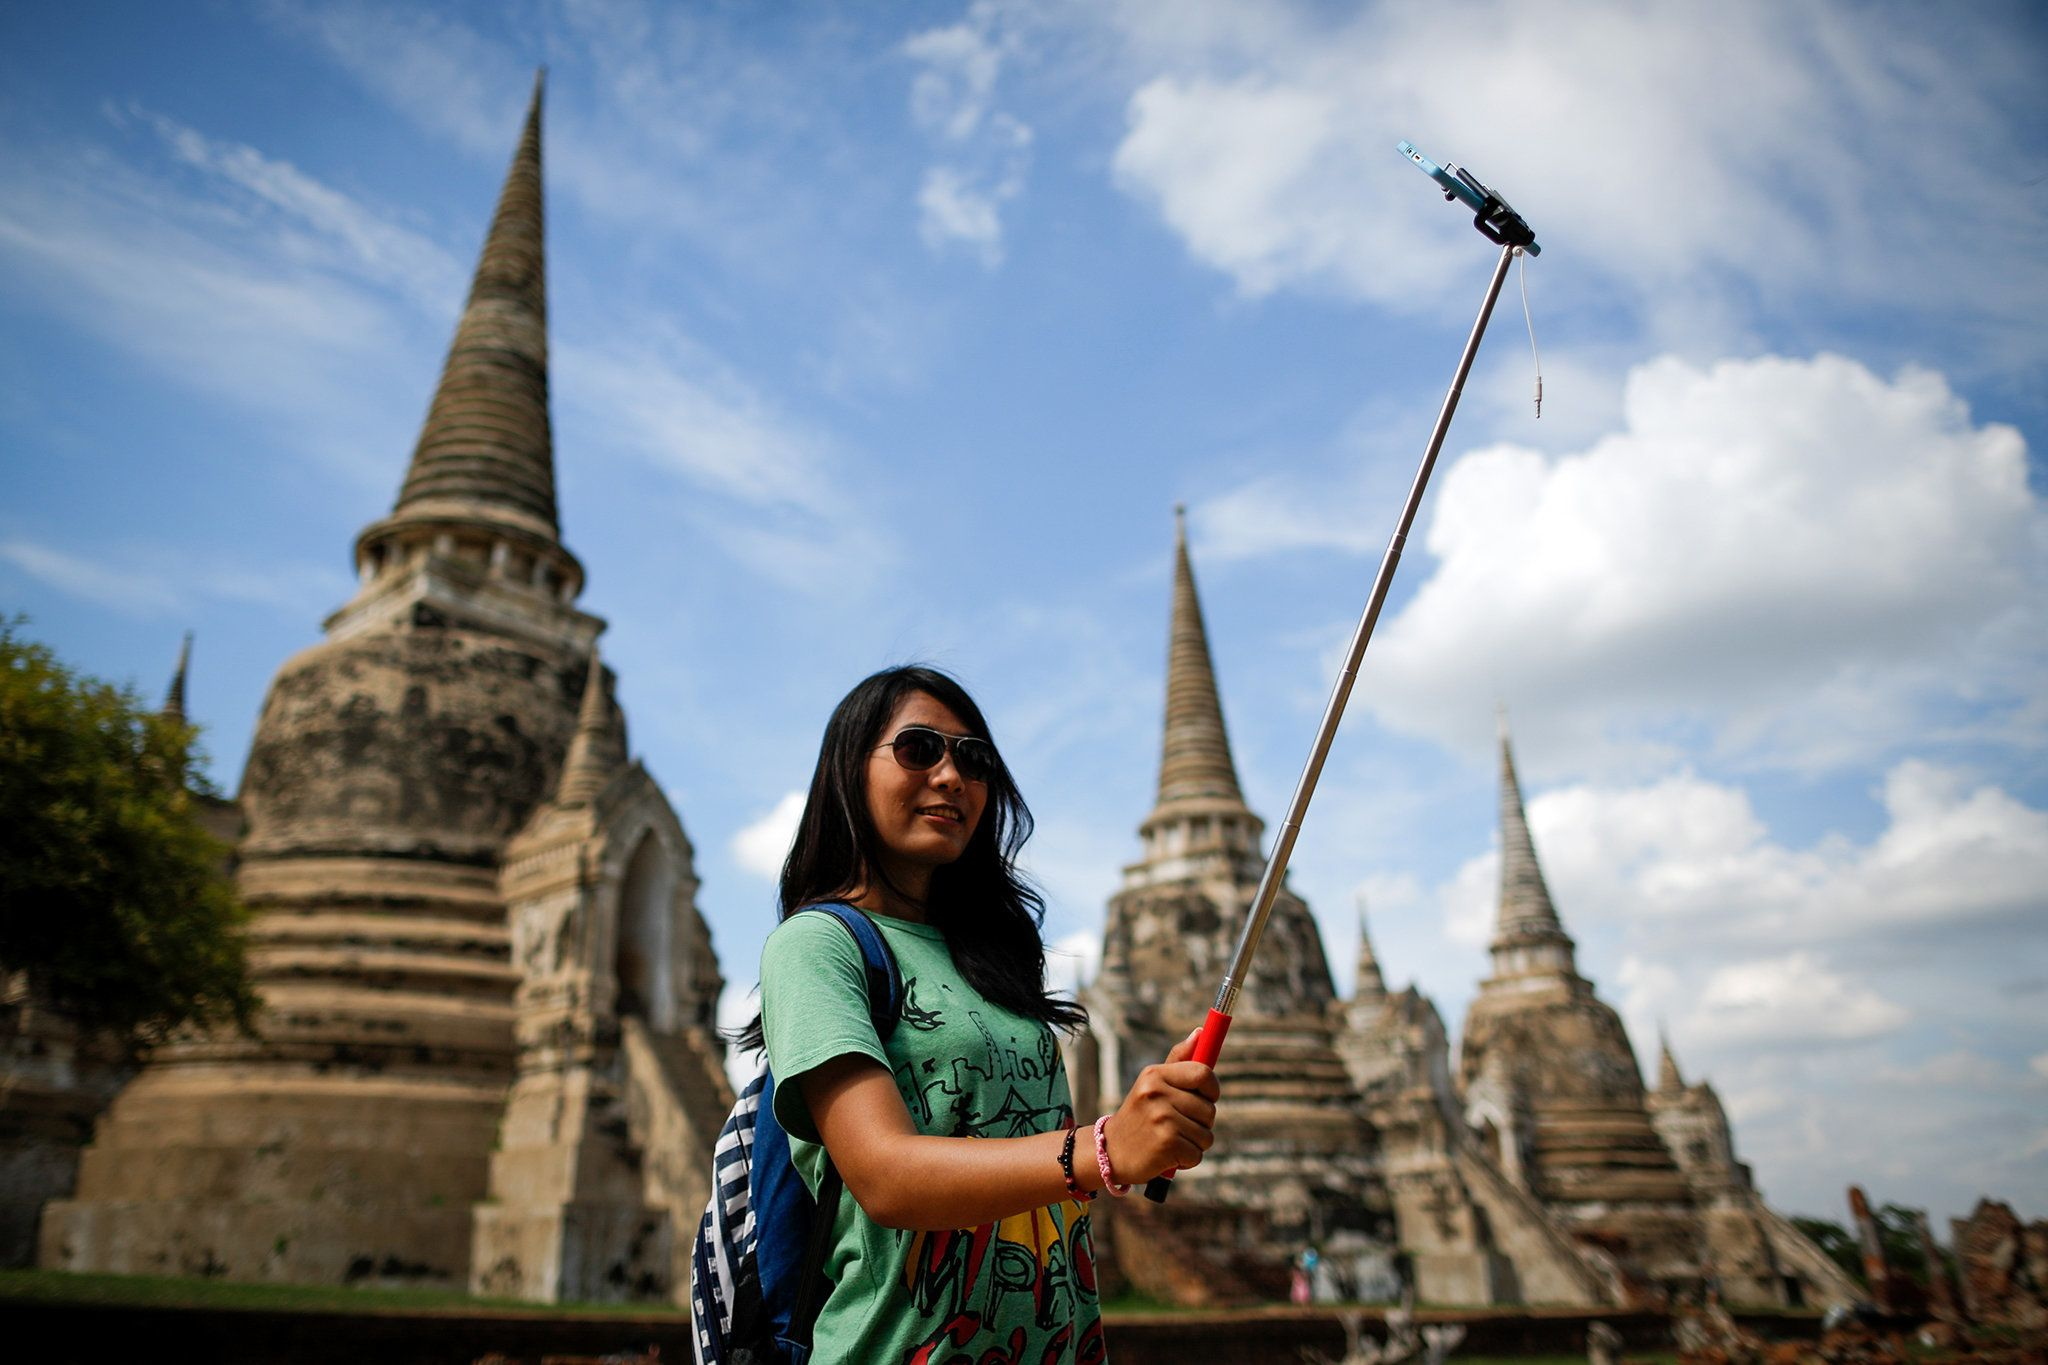 A tourist snaps a picture of herself with a selfie stick at Wat Phra Sri Sanphet, a temple in the ancient city of Ayutthaya,